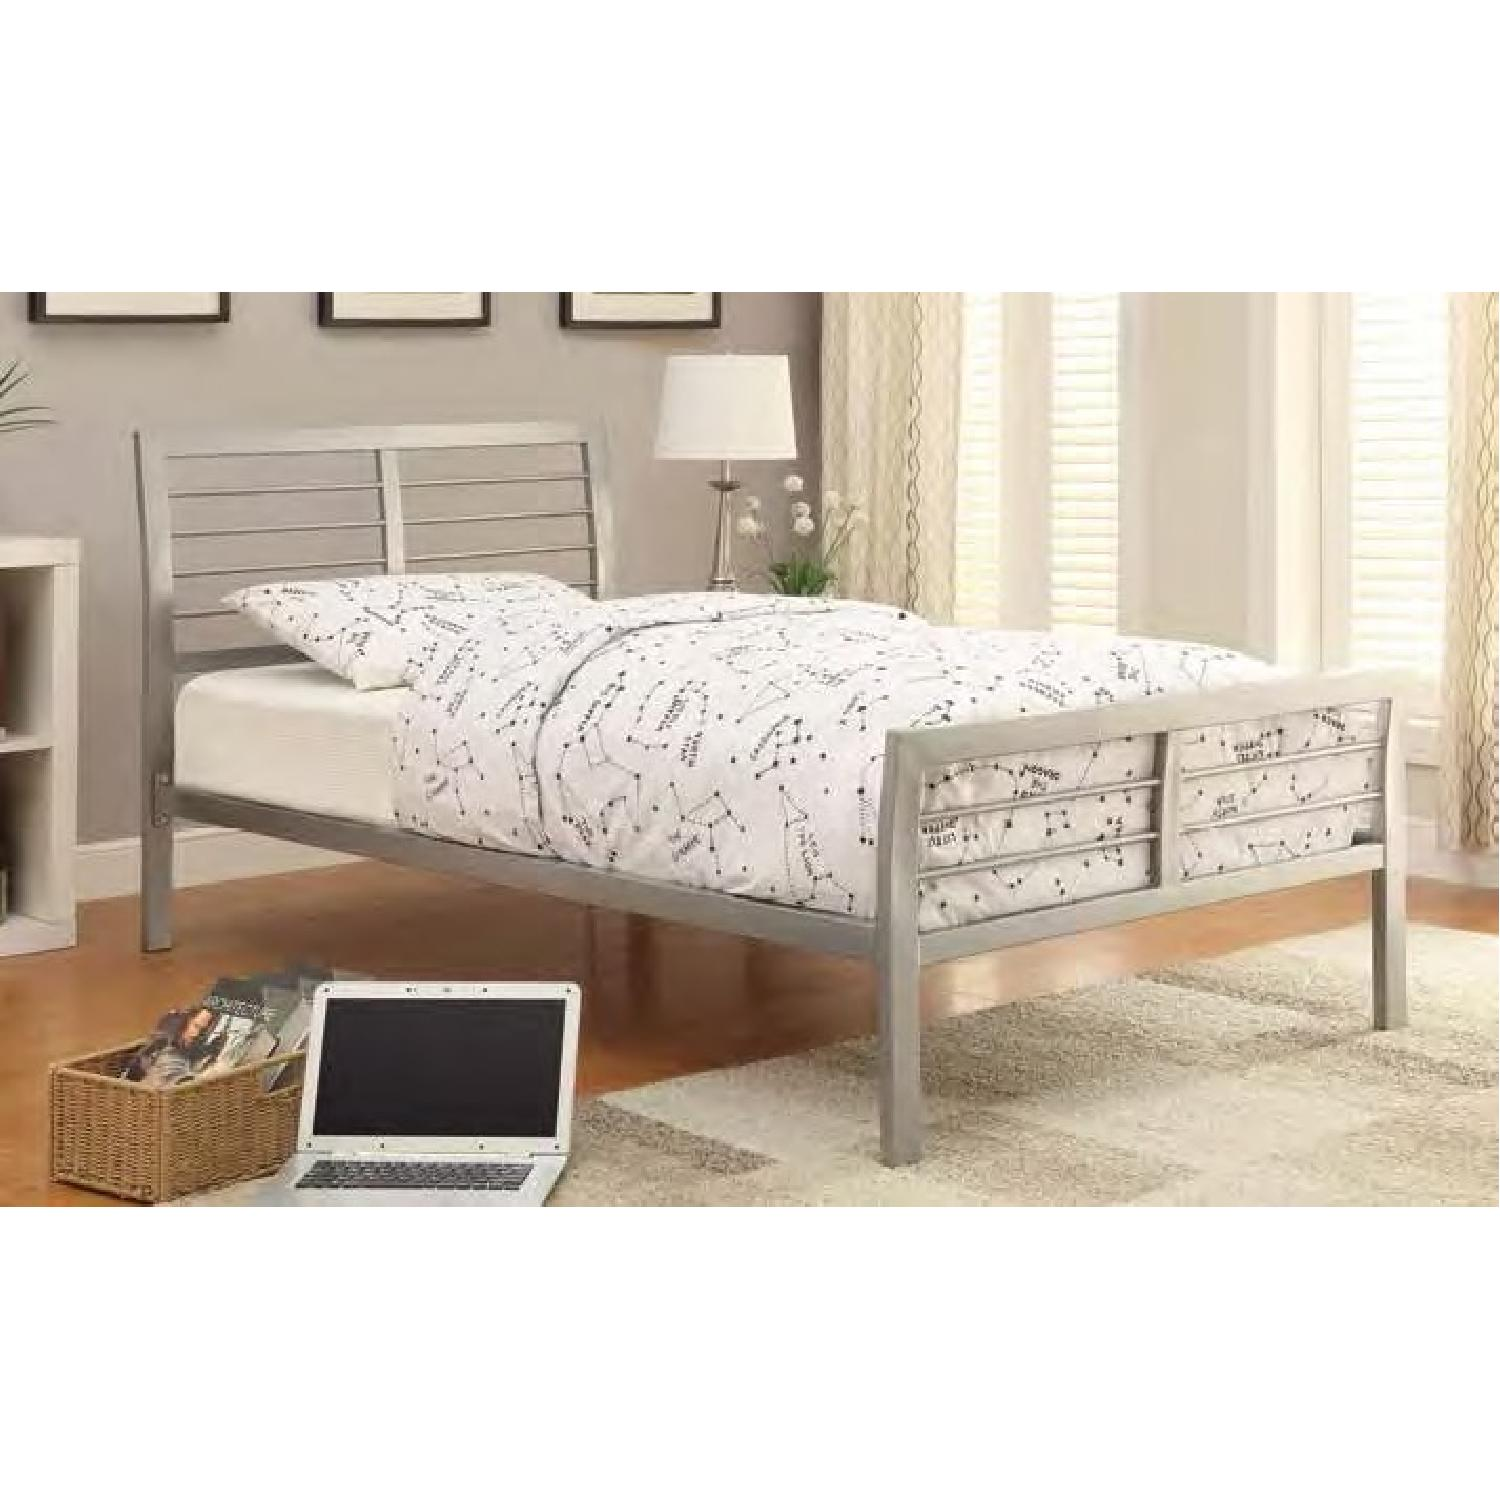 Modern Queen Size Metal Platform Bed in Silver Finish - image-1